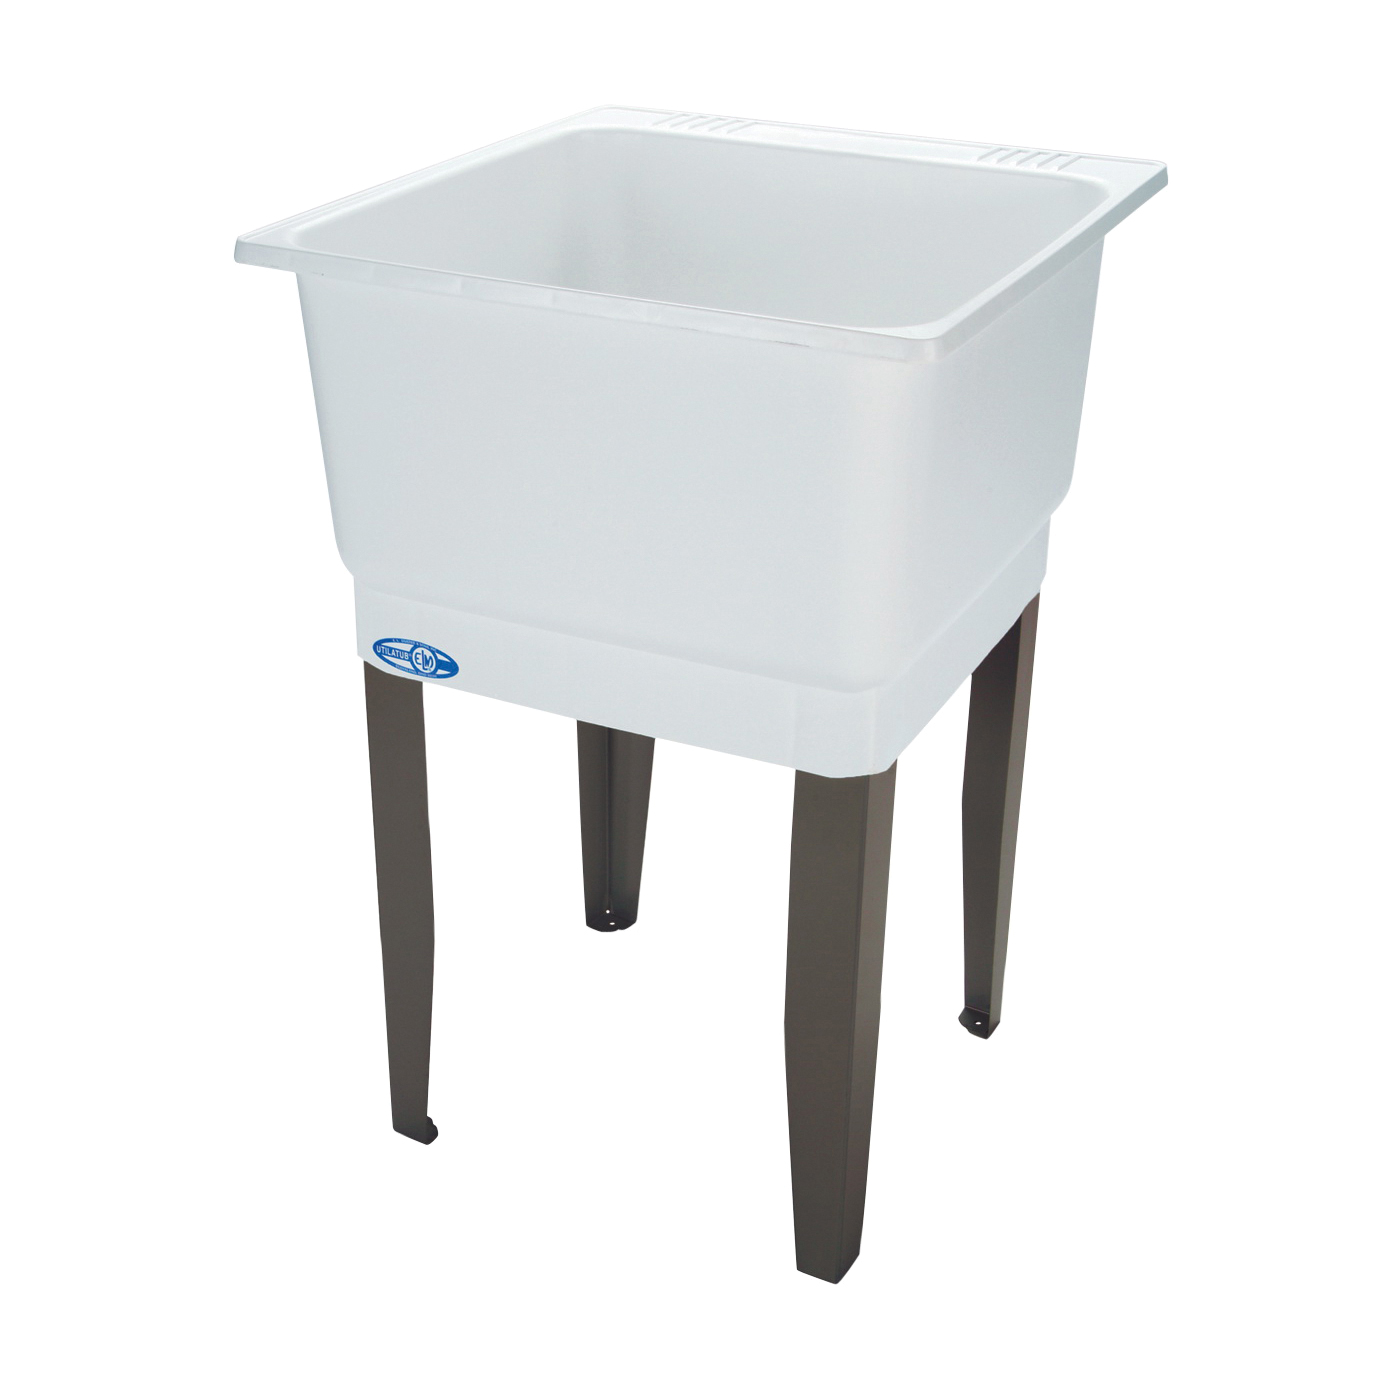 Picture of ELM UTILATUB 14K Laundry Tub, 20 gal Capacity, 23 in OAW, 25 in OAD, 33 in OAH, Co-Polypure, White, 1-Bowl